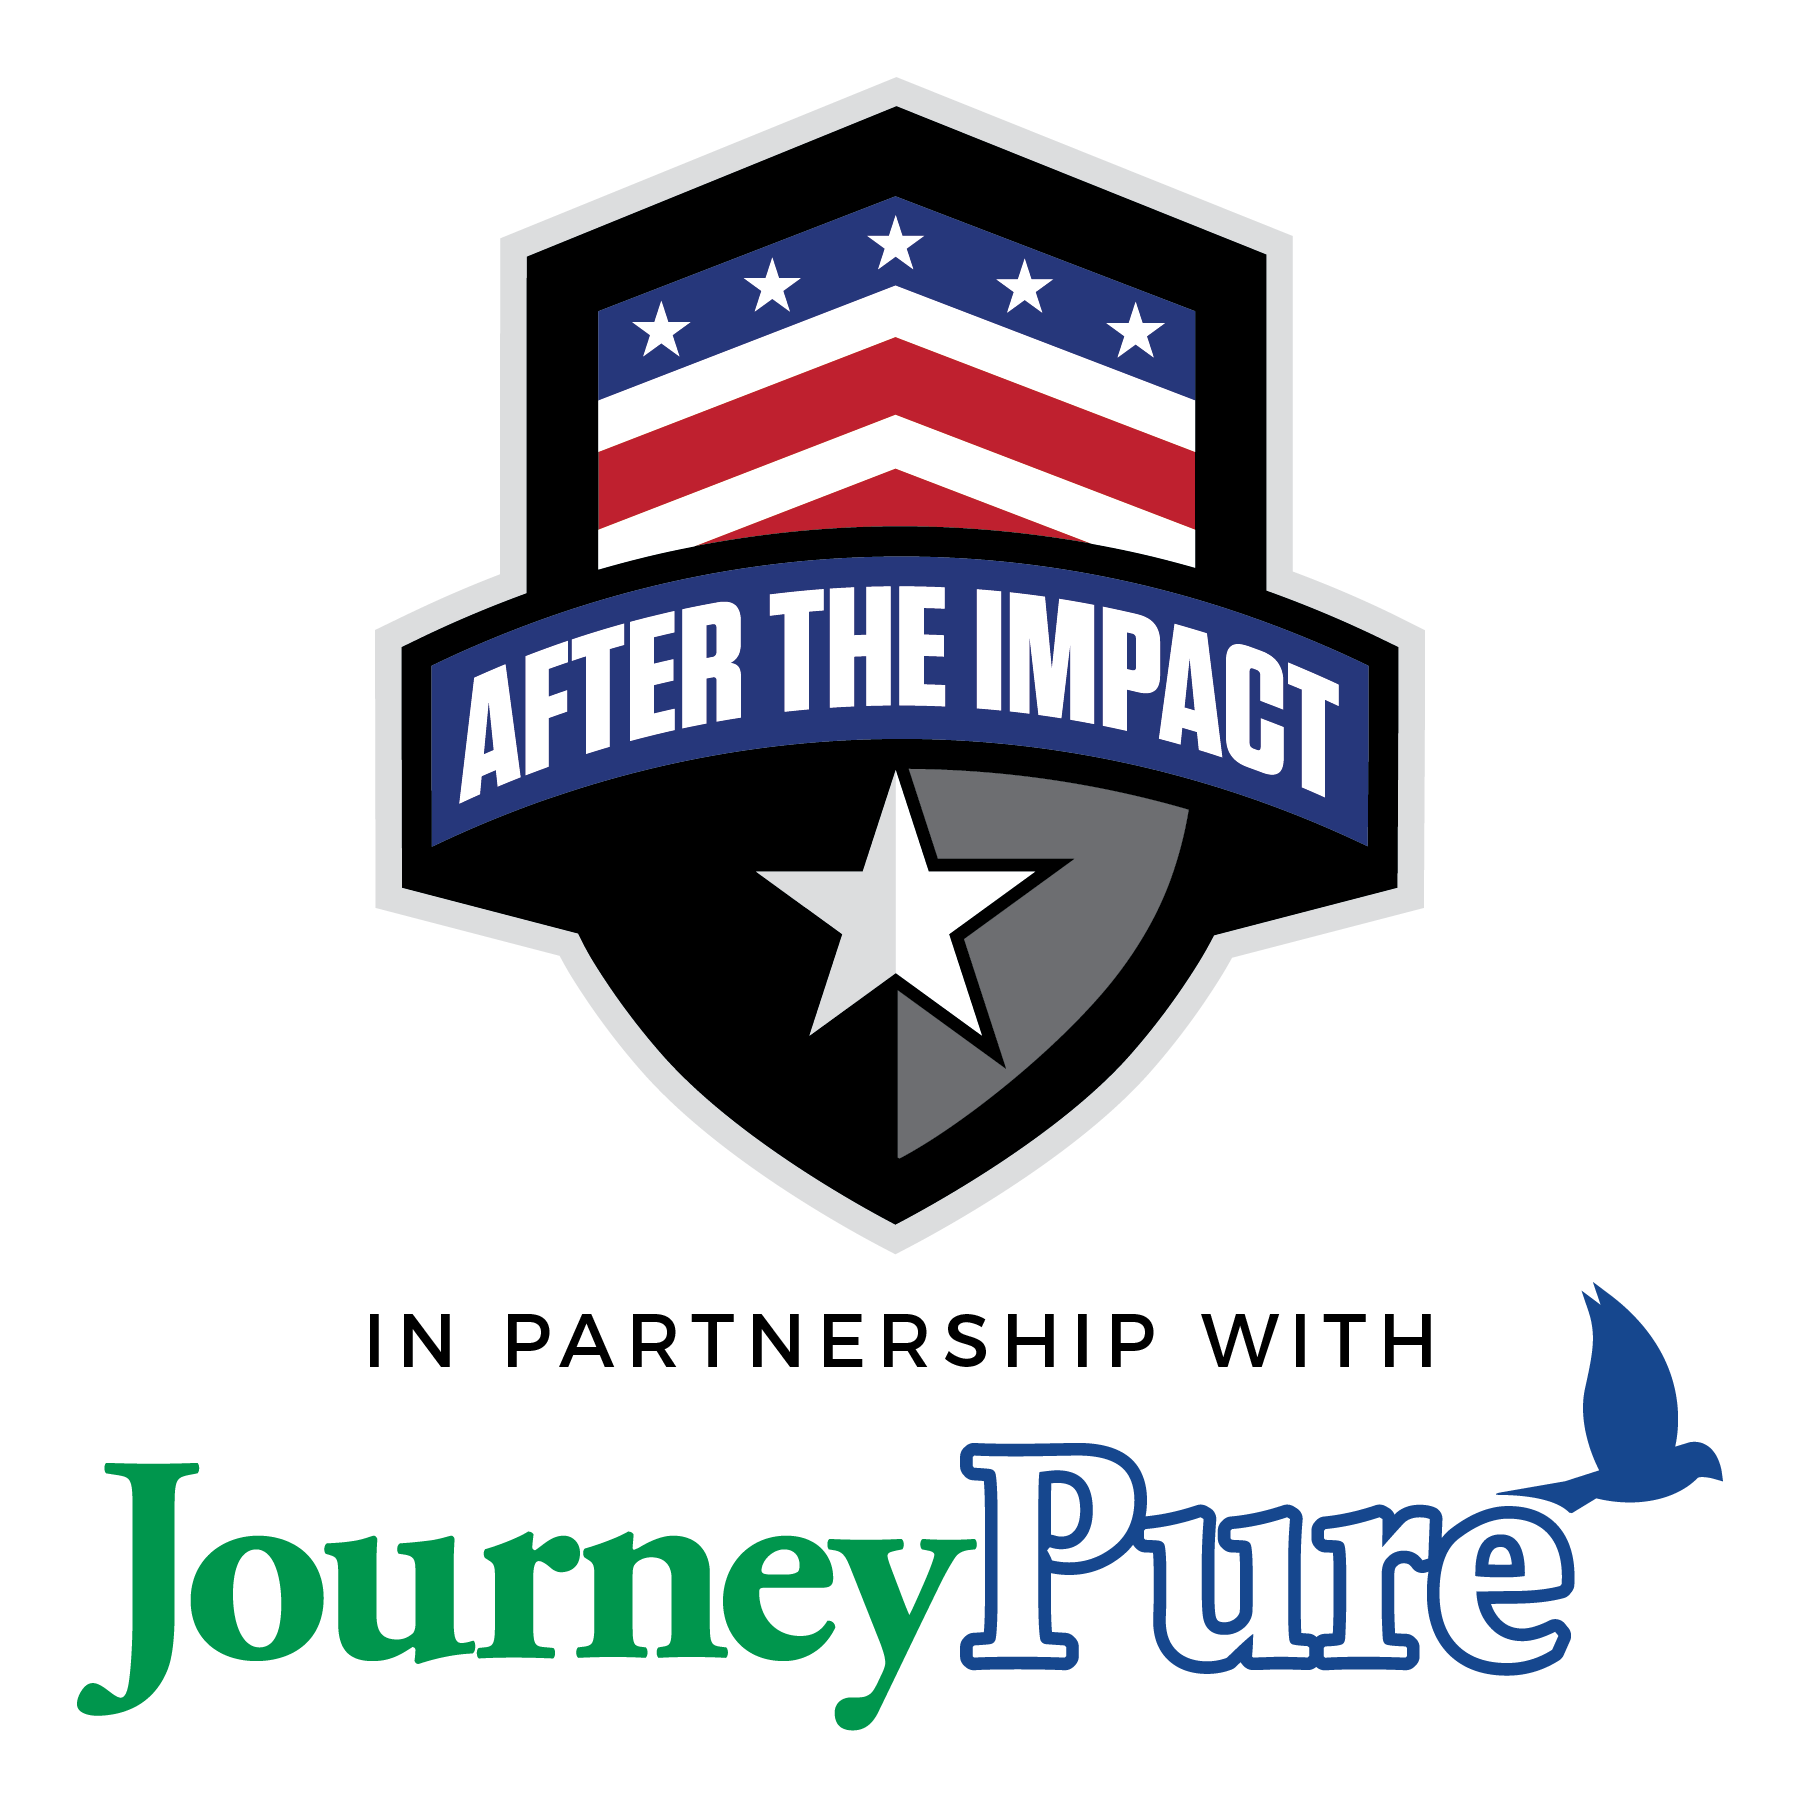 After The Impact in partnership with JourneyPure